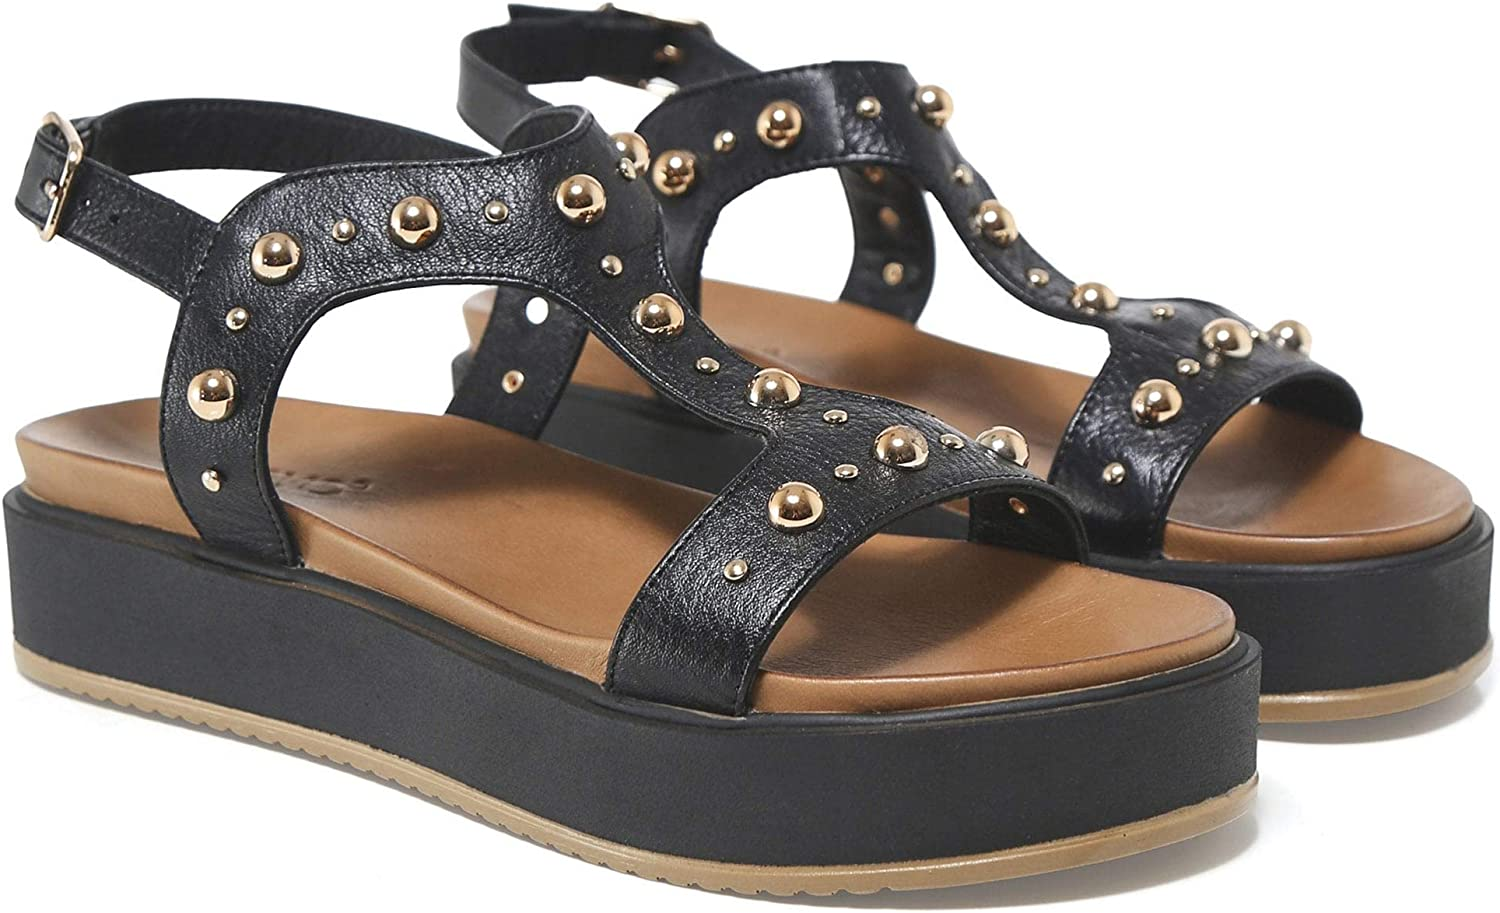 Inuovo Women's Leather T-Bar Studded Sandals Black